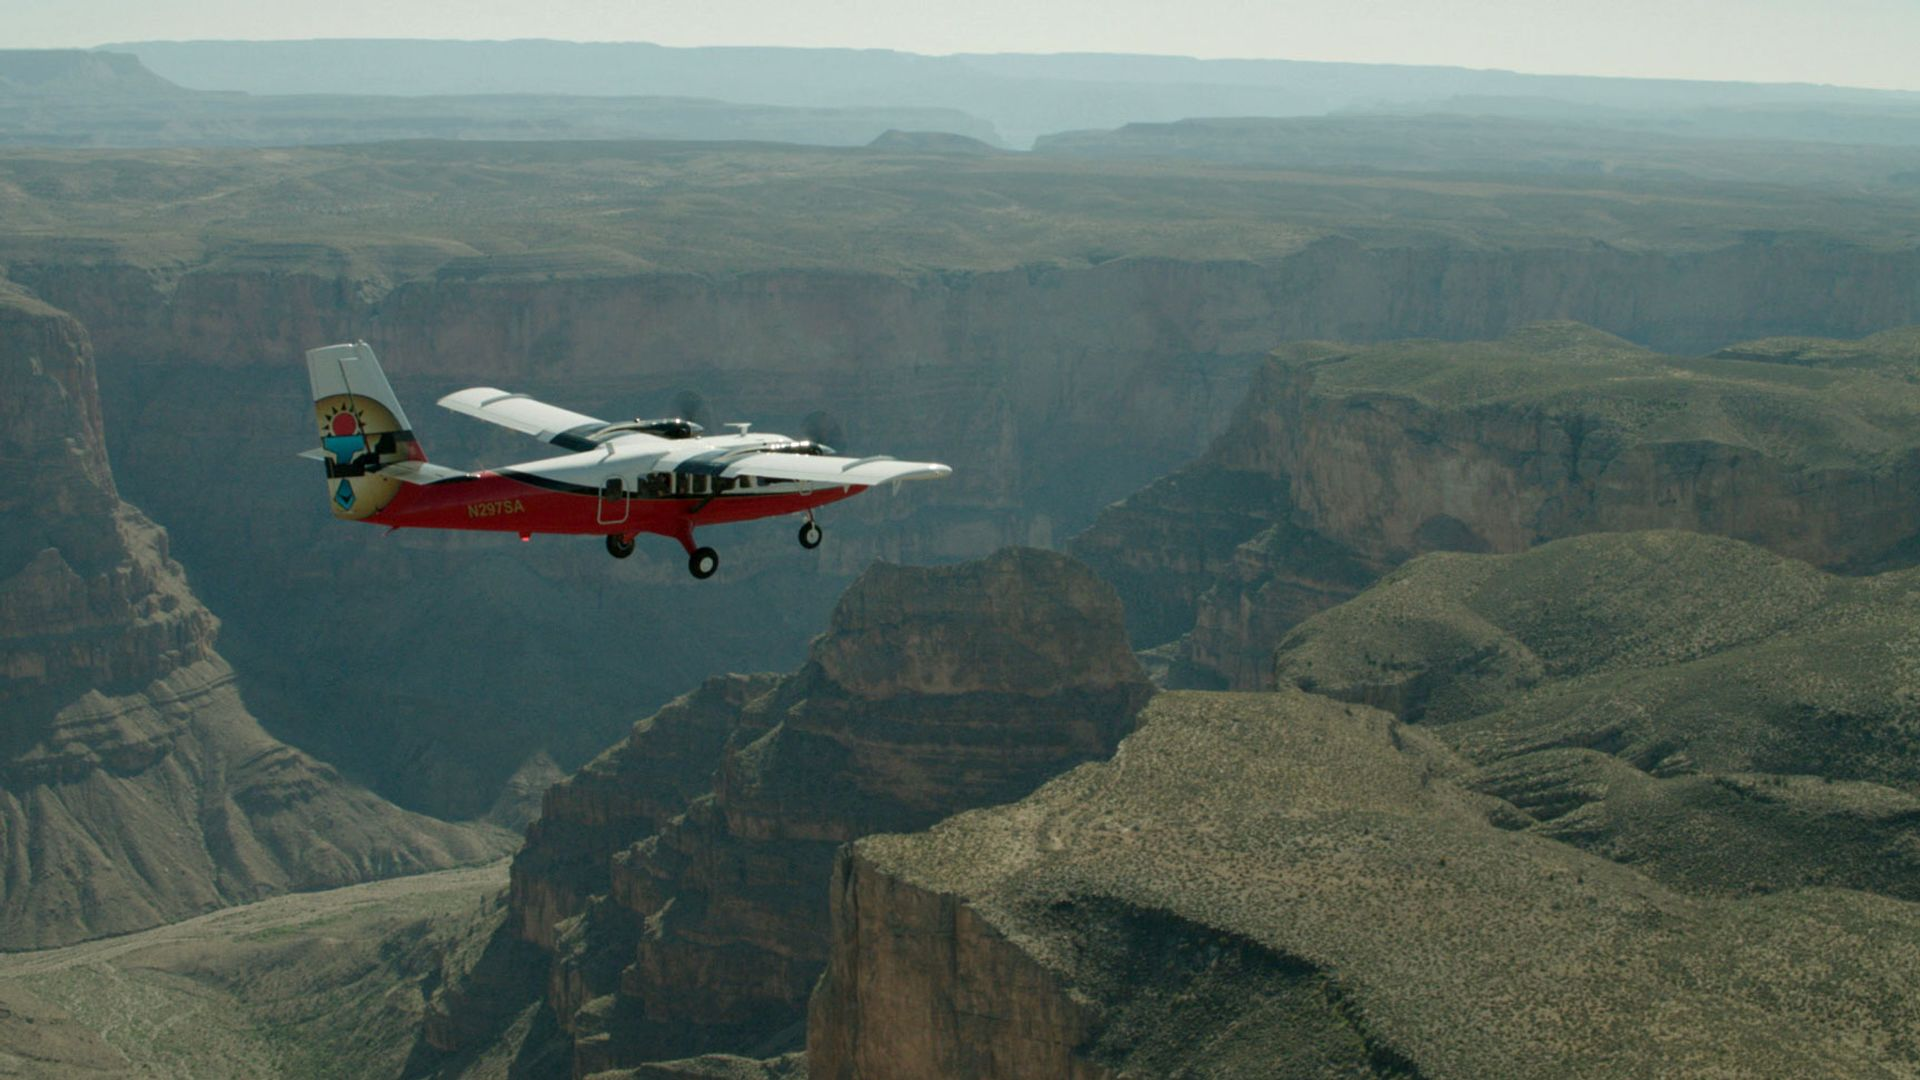 Soar over the Grand Canyon aboard a Grand Canyon airplane tour